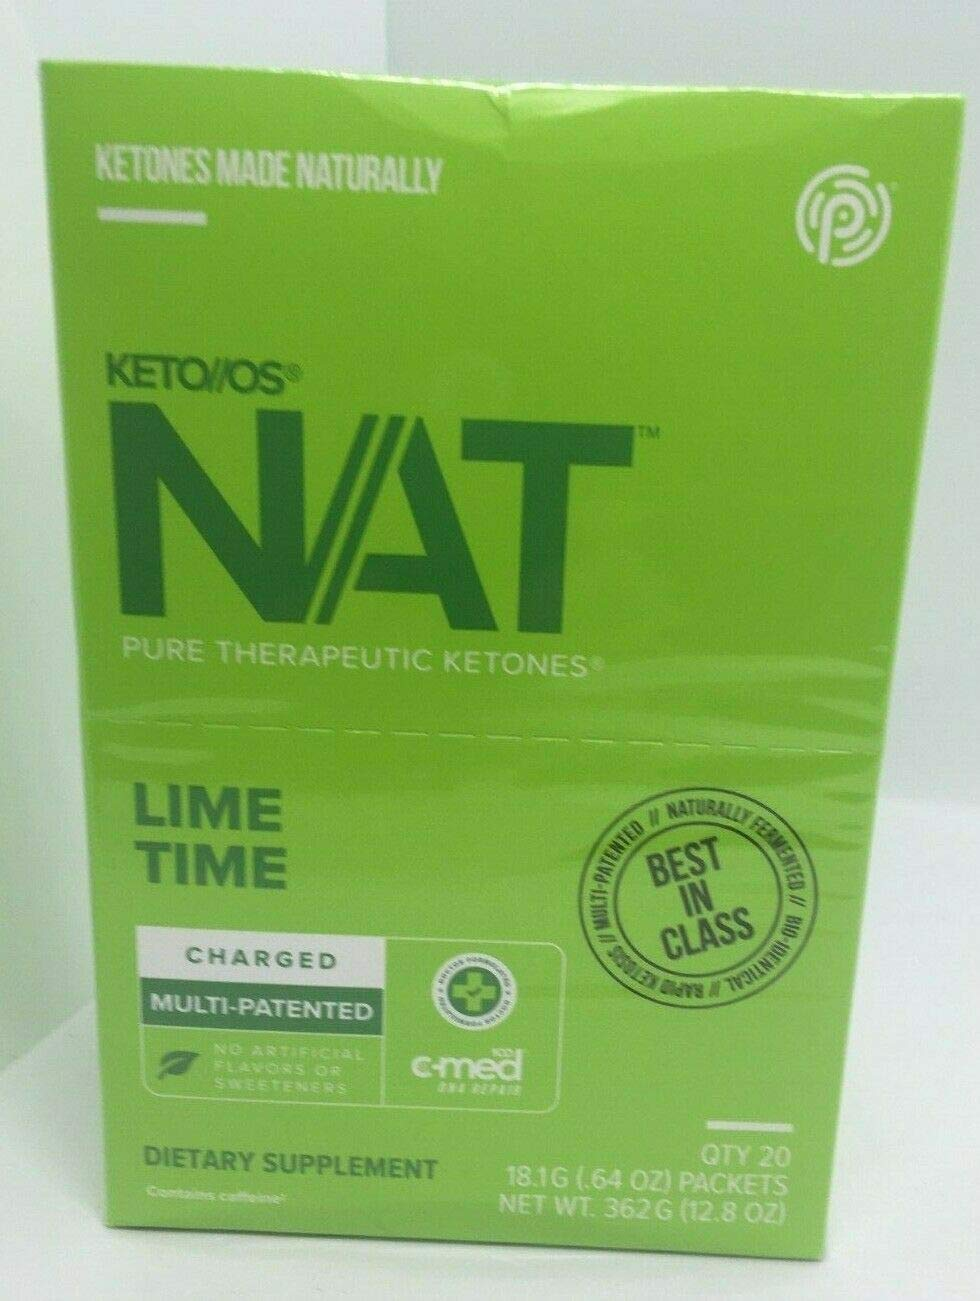 Pruvit Keto OS NAT CHARGED, BHB Salts Ketogenic Supplement – Beta Hydroxybutyrates Exogenous Ketones for Fat Loss, Workout Energy Boost Through Fast Ketosis. 20 Sachets Lime Time